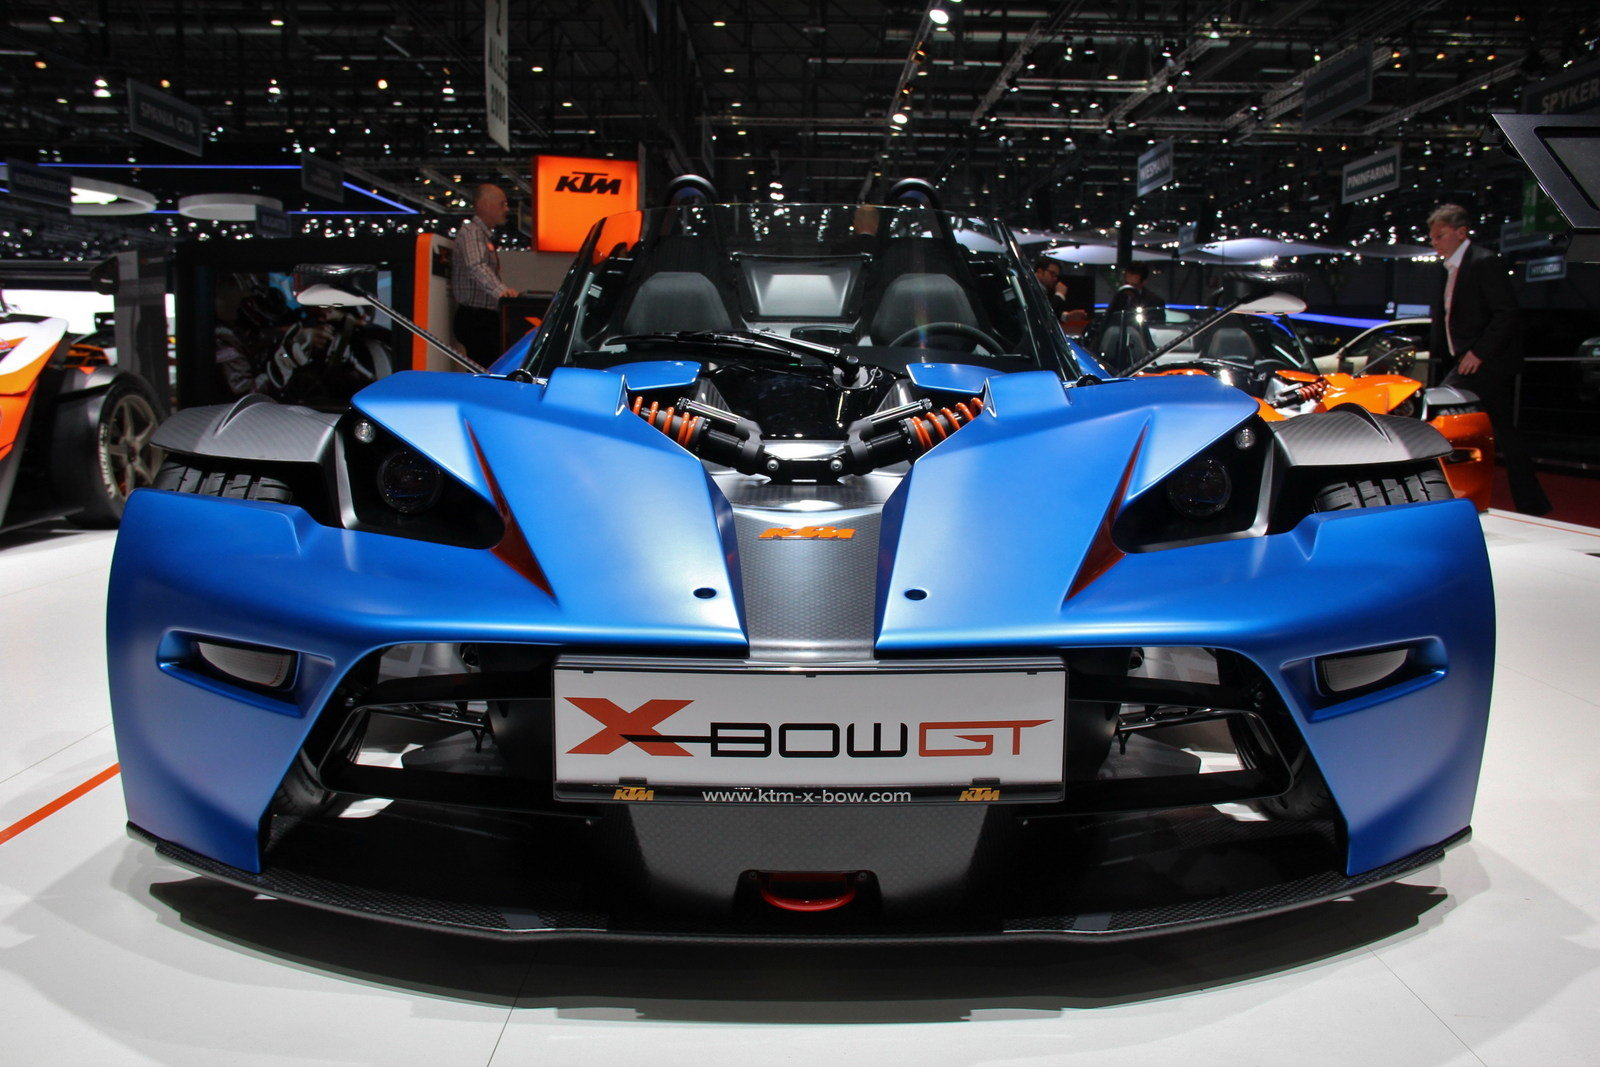 2014 ktm x bow gt picture 497163 car review top speed. Black Bedroom Furniture Sets. Home Design Ideas